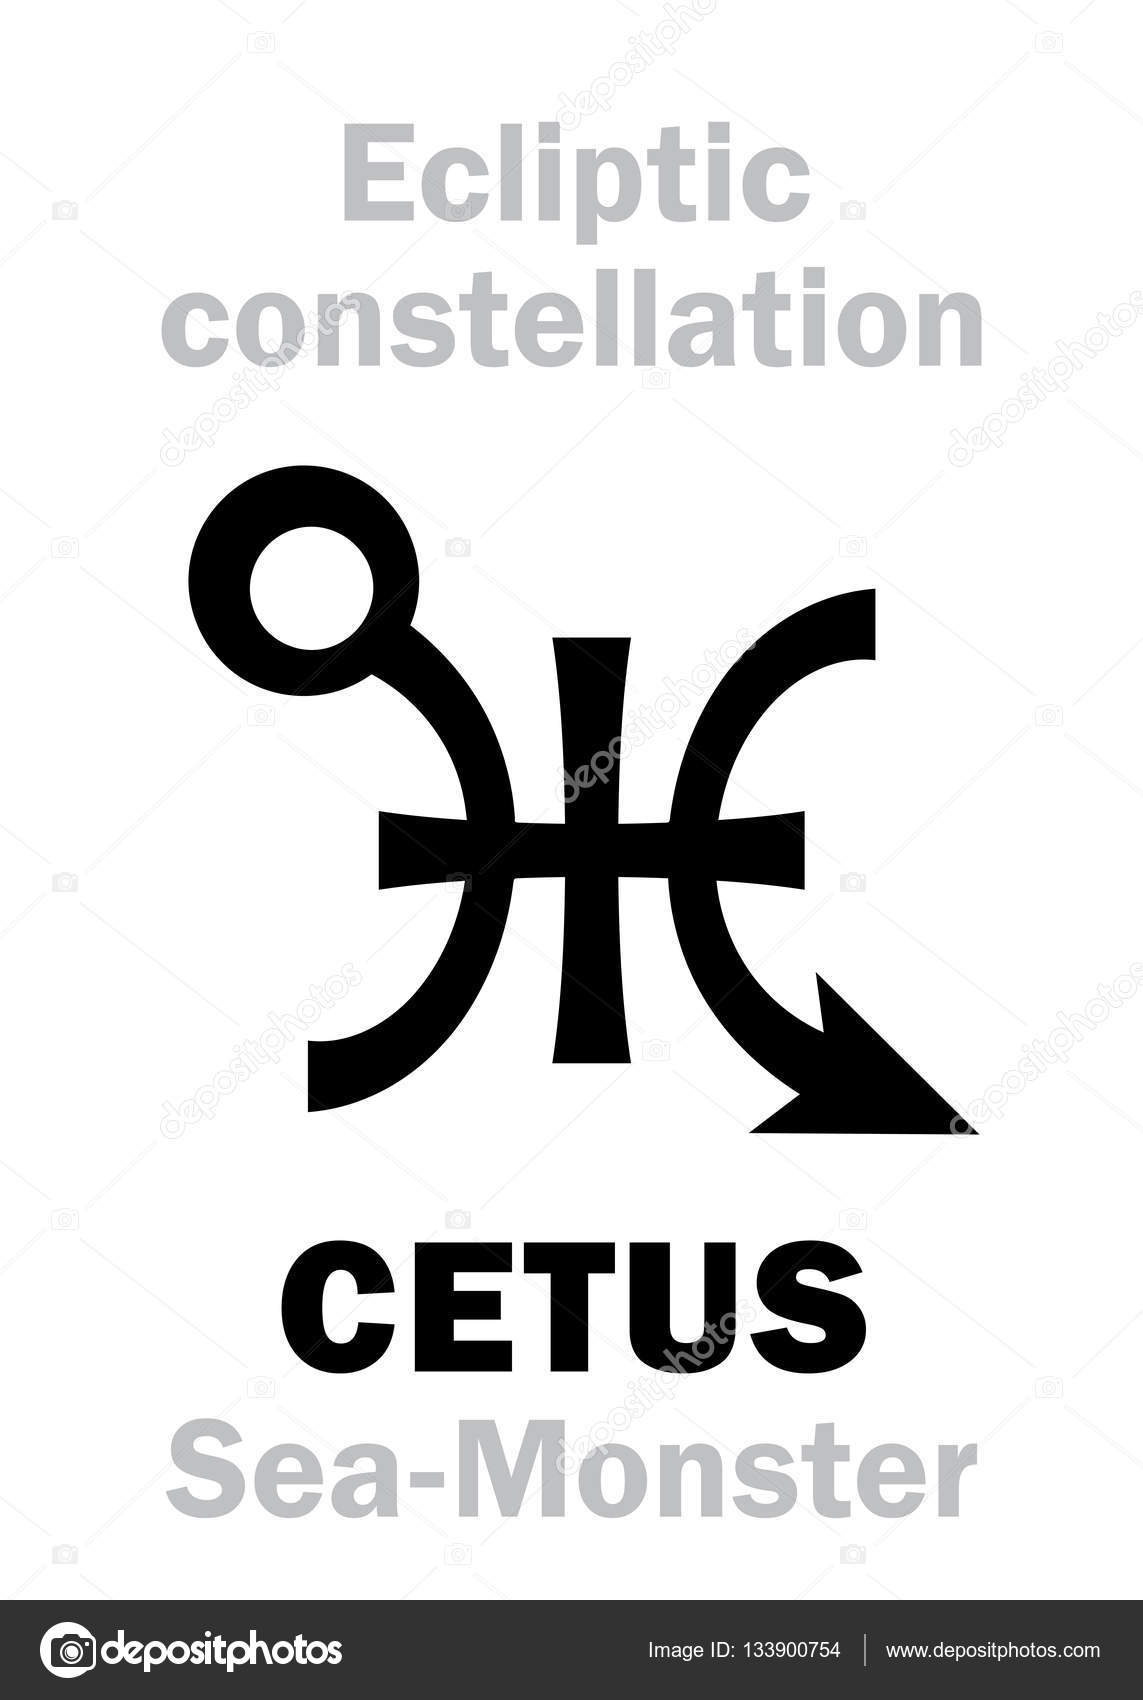 Astrology Sign Of Constellation Cetus The Sea Monster Stock